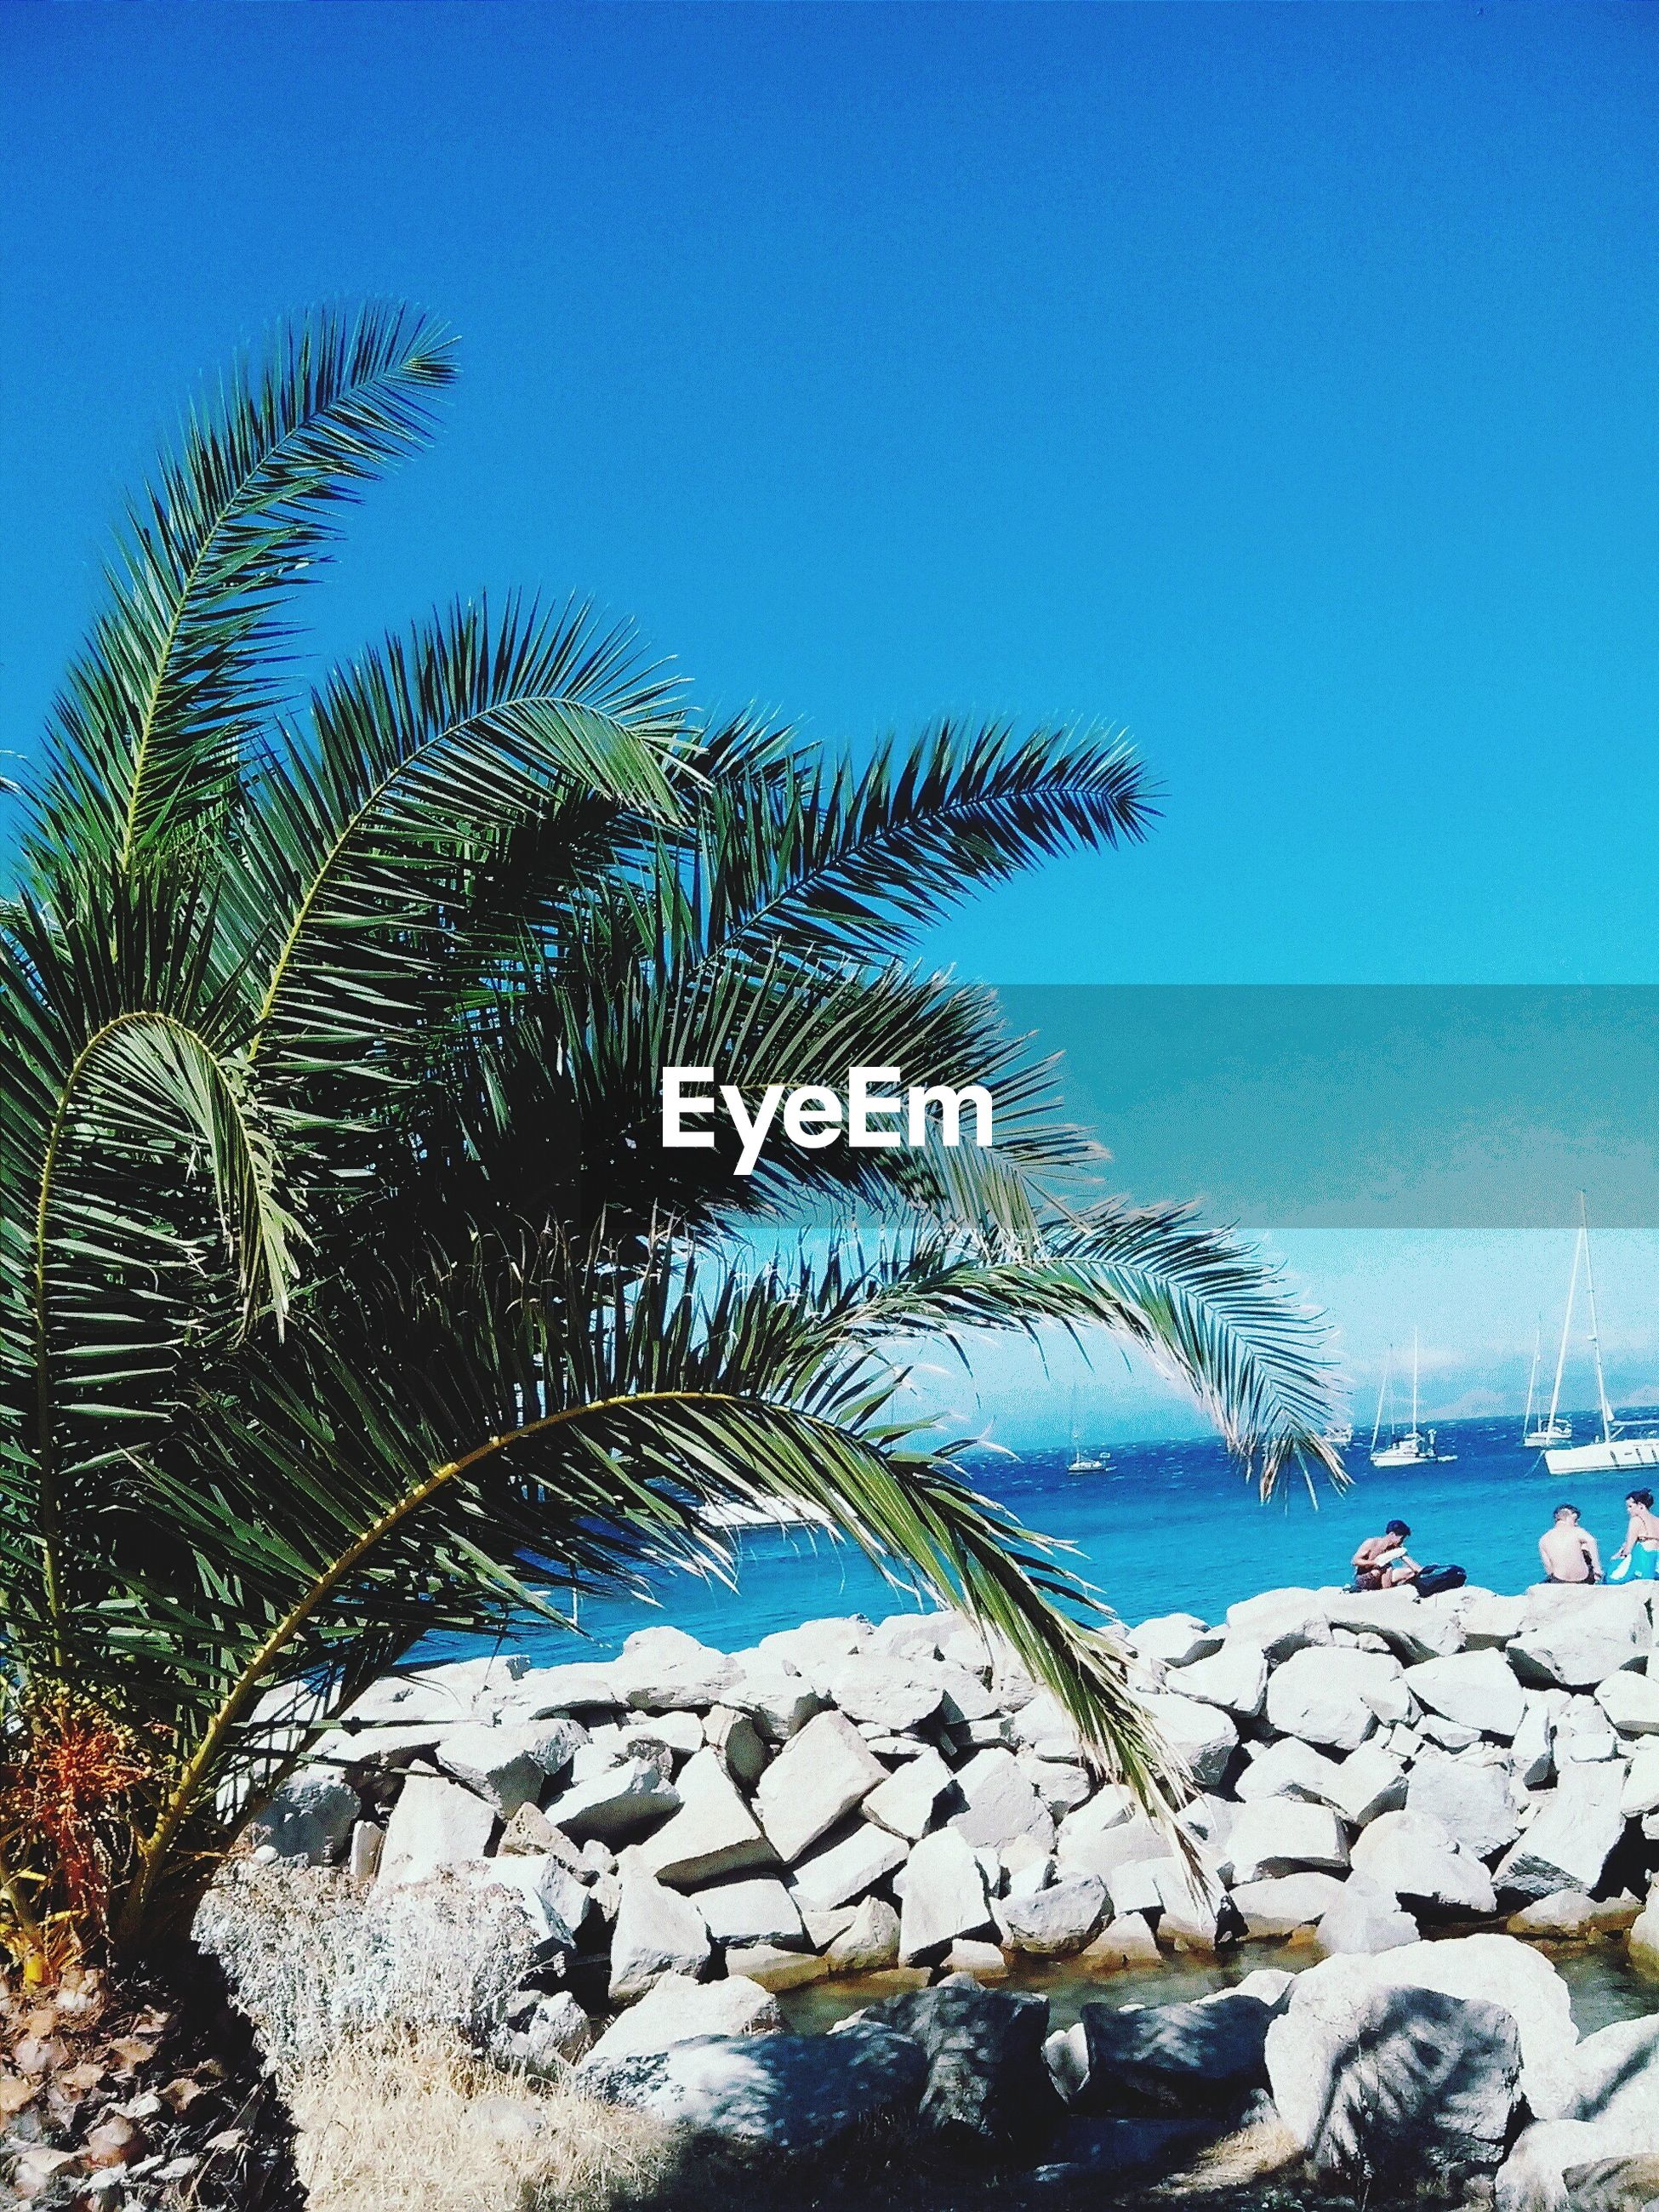 blue, clear sky, water, tranquility, tree, nature, tranquil scene, beauty in nature, scenics, growth, sky, palm tree, sunlight, day, sea, copy space, lake, outdoors, plant, branch